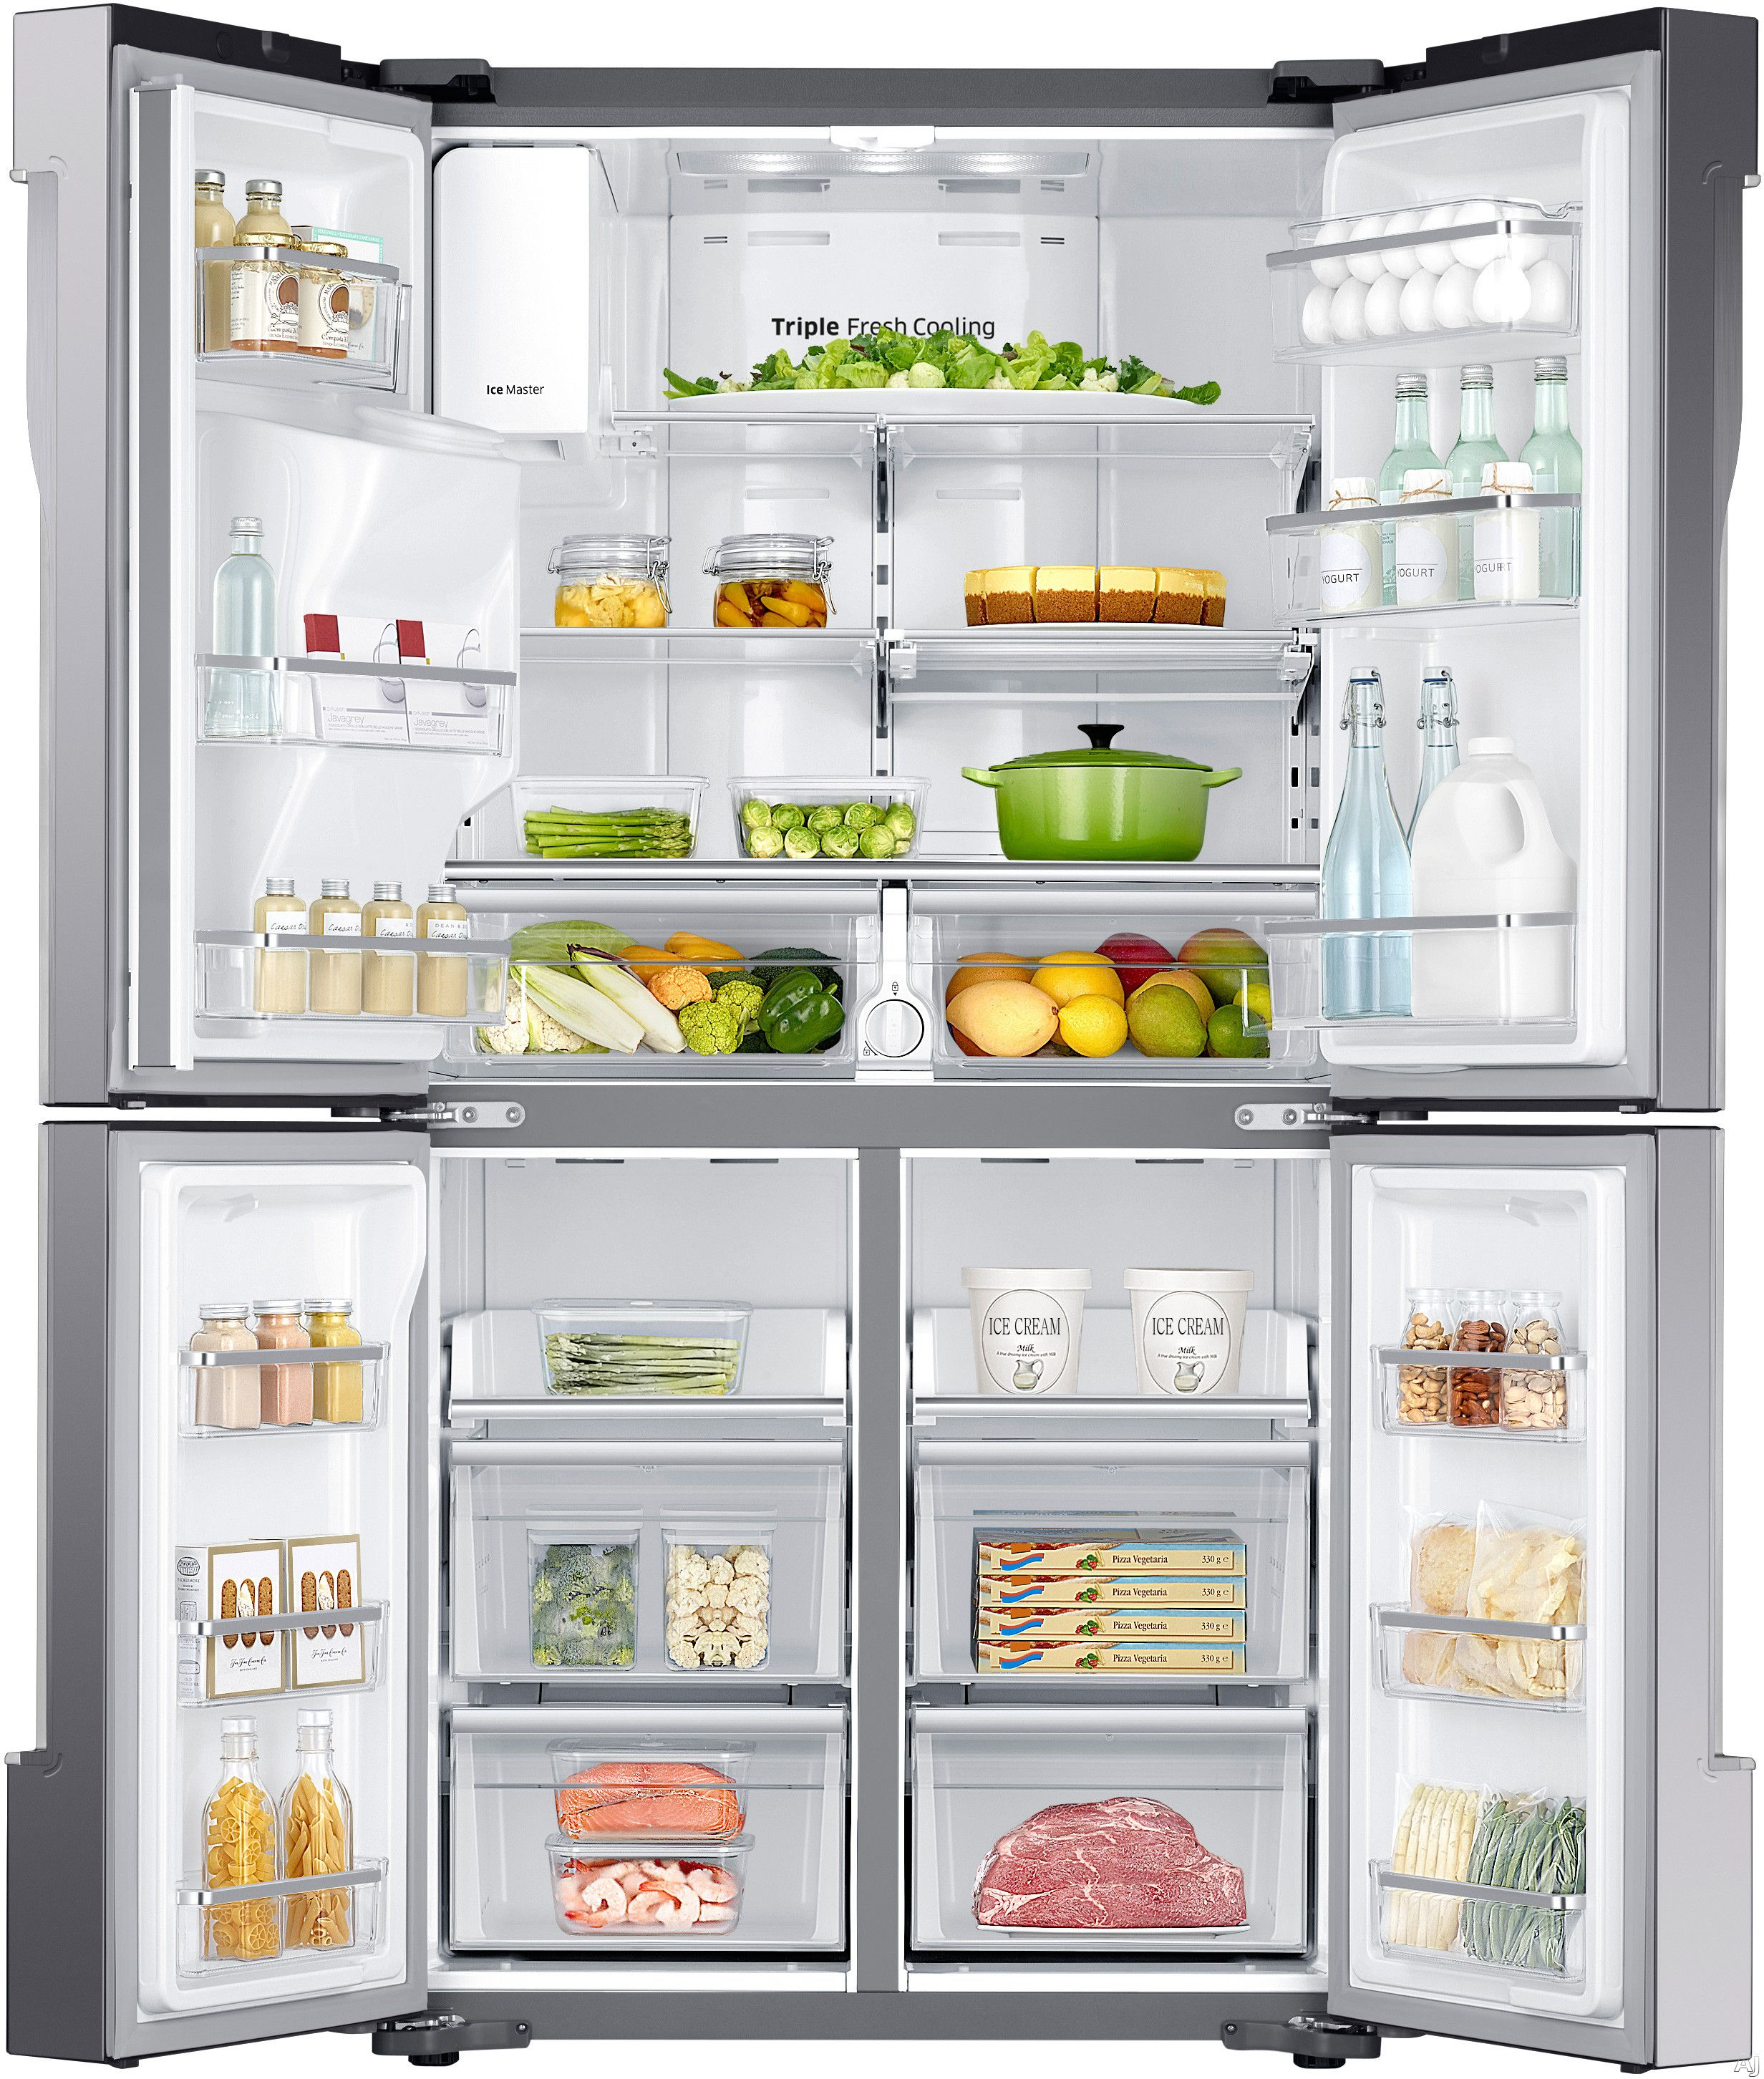 Counter Depth French Door Refrigerator With Spill Proof Glass Shelves, Triple Cooling